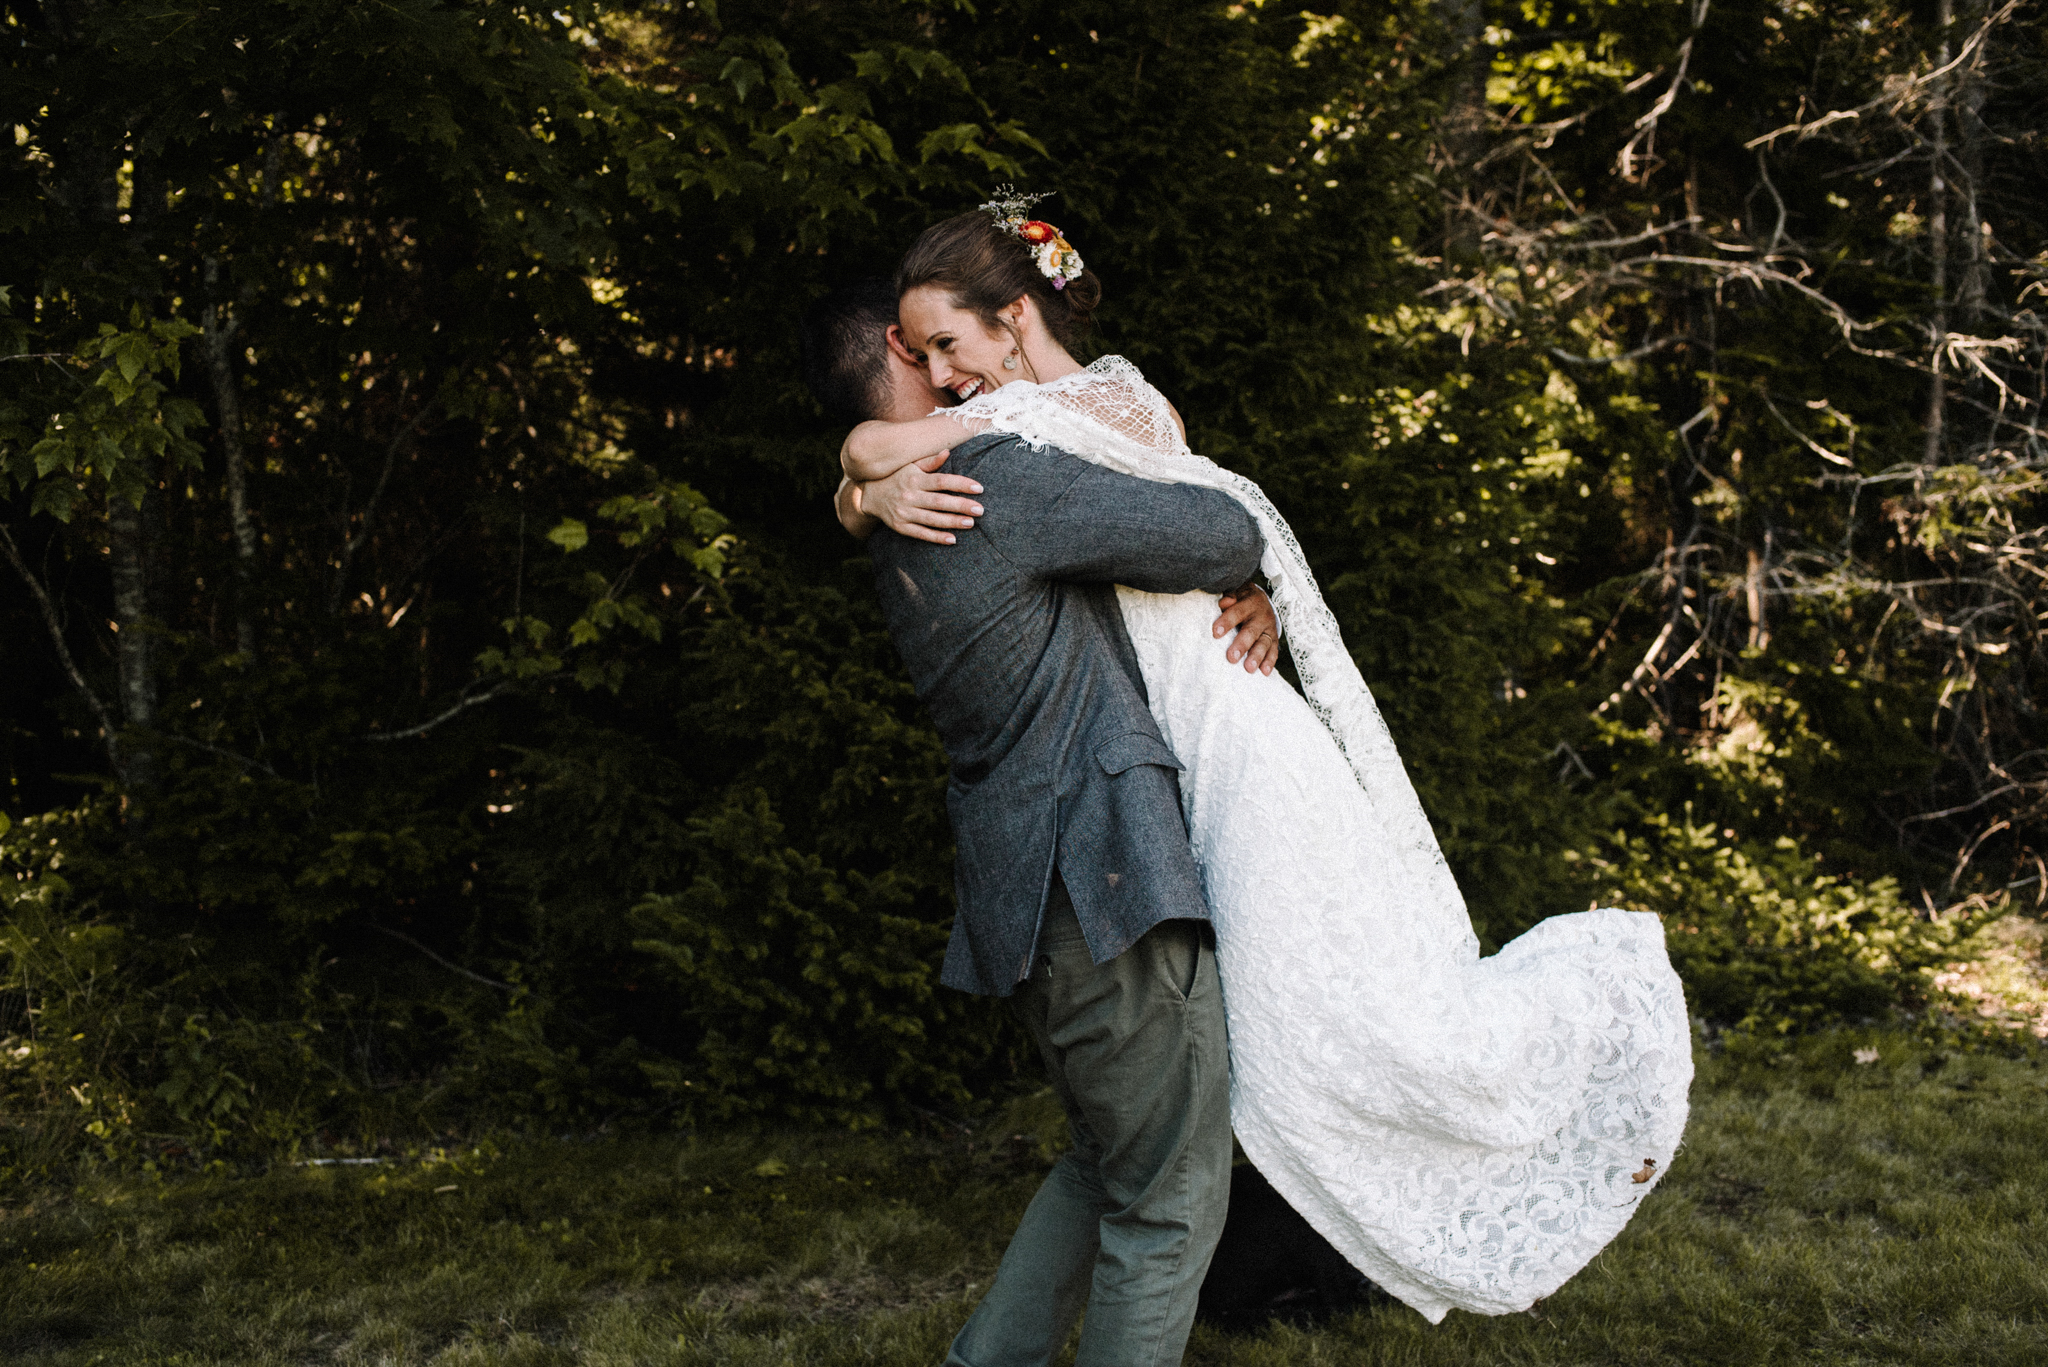 Shenandoah National Park Elopement Wedding Photographer and Planner_109.jpg